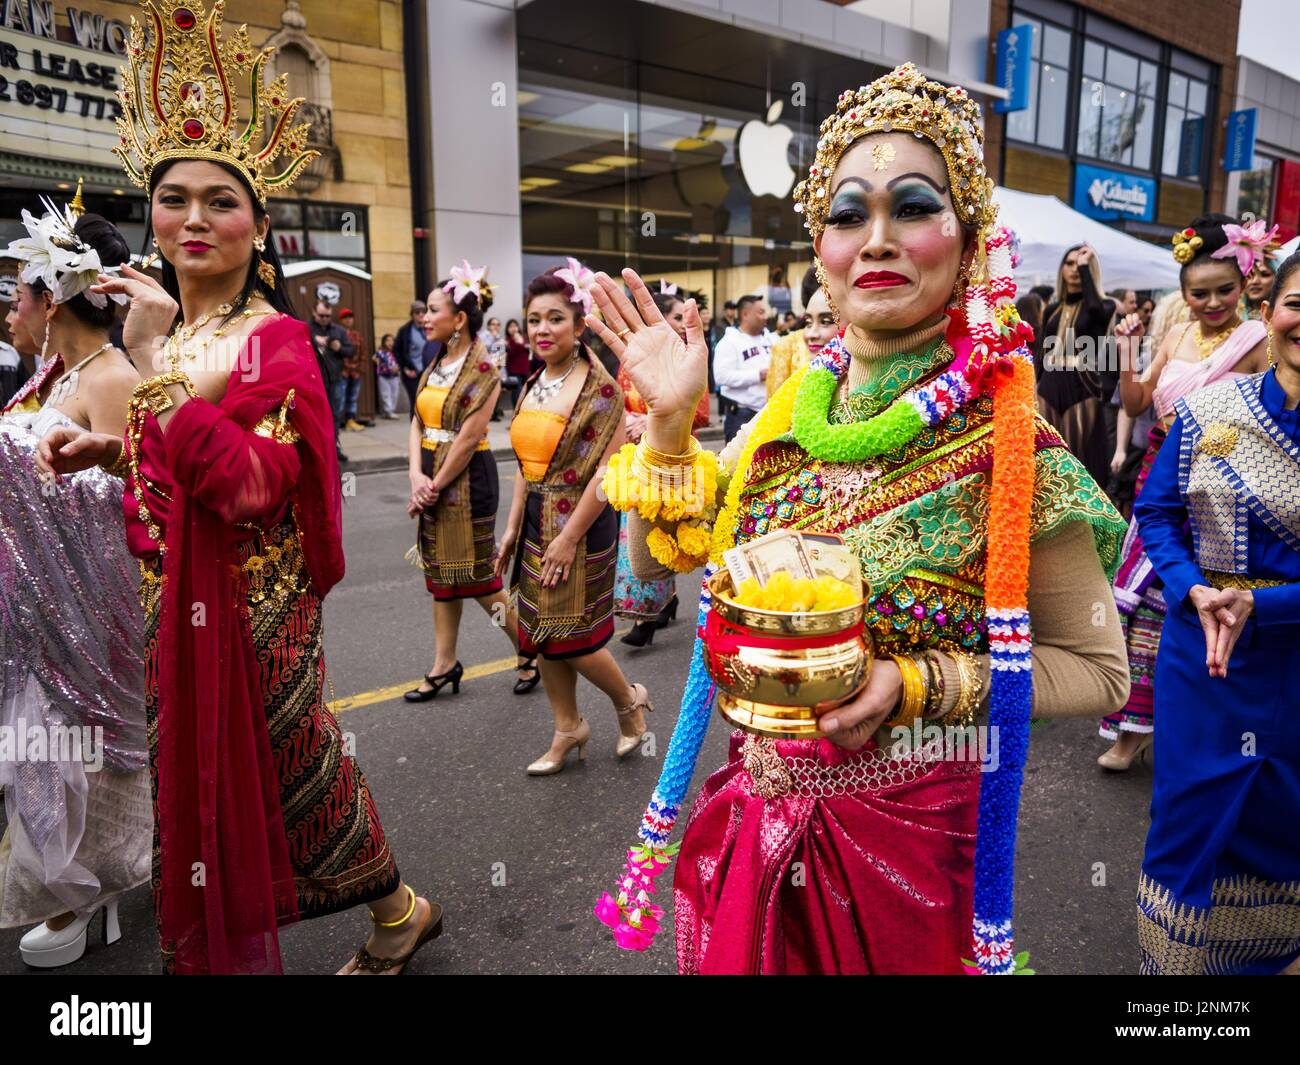 Page 3 - Thai Ladyboy High Resolution Stock Photography and Images - Alamy